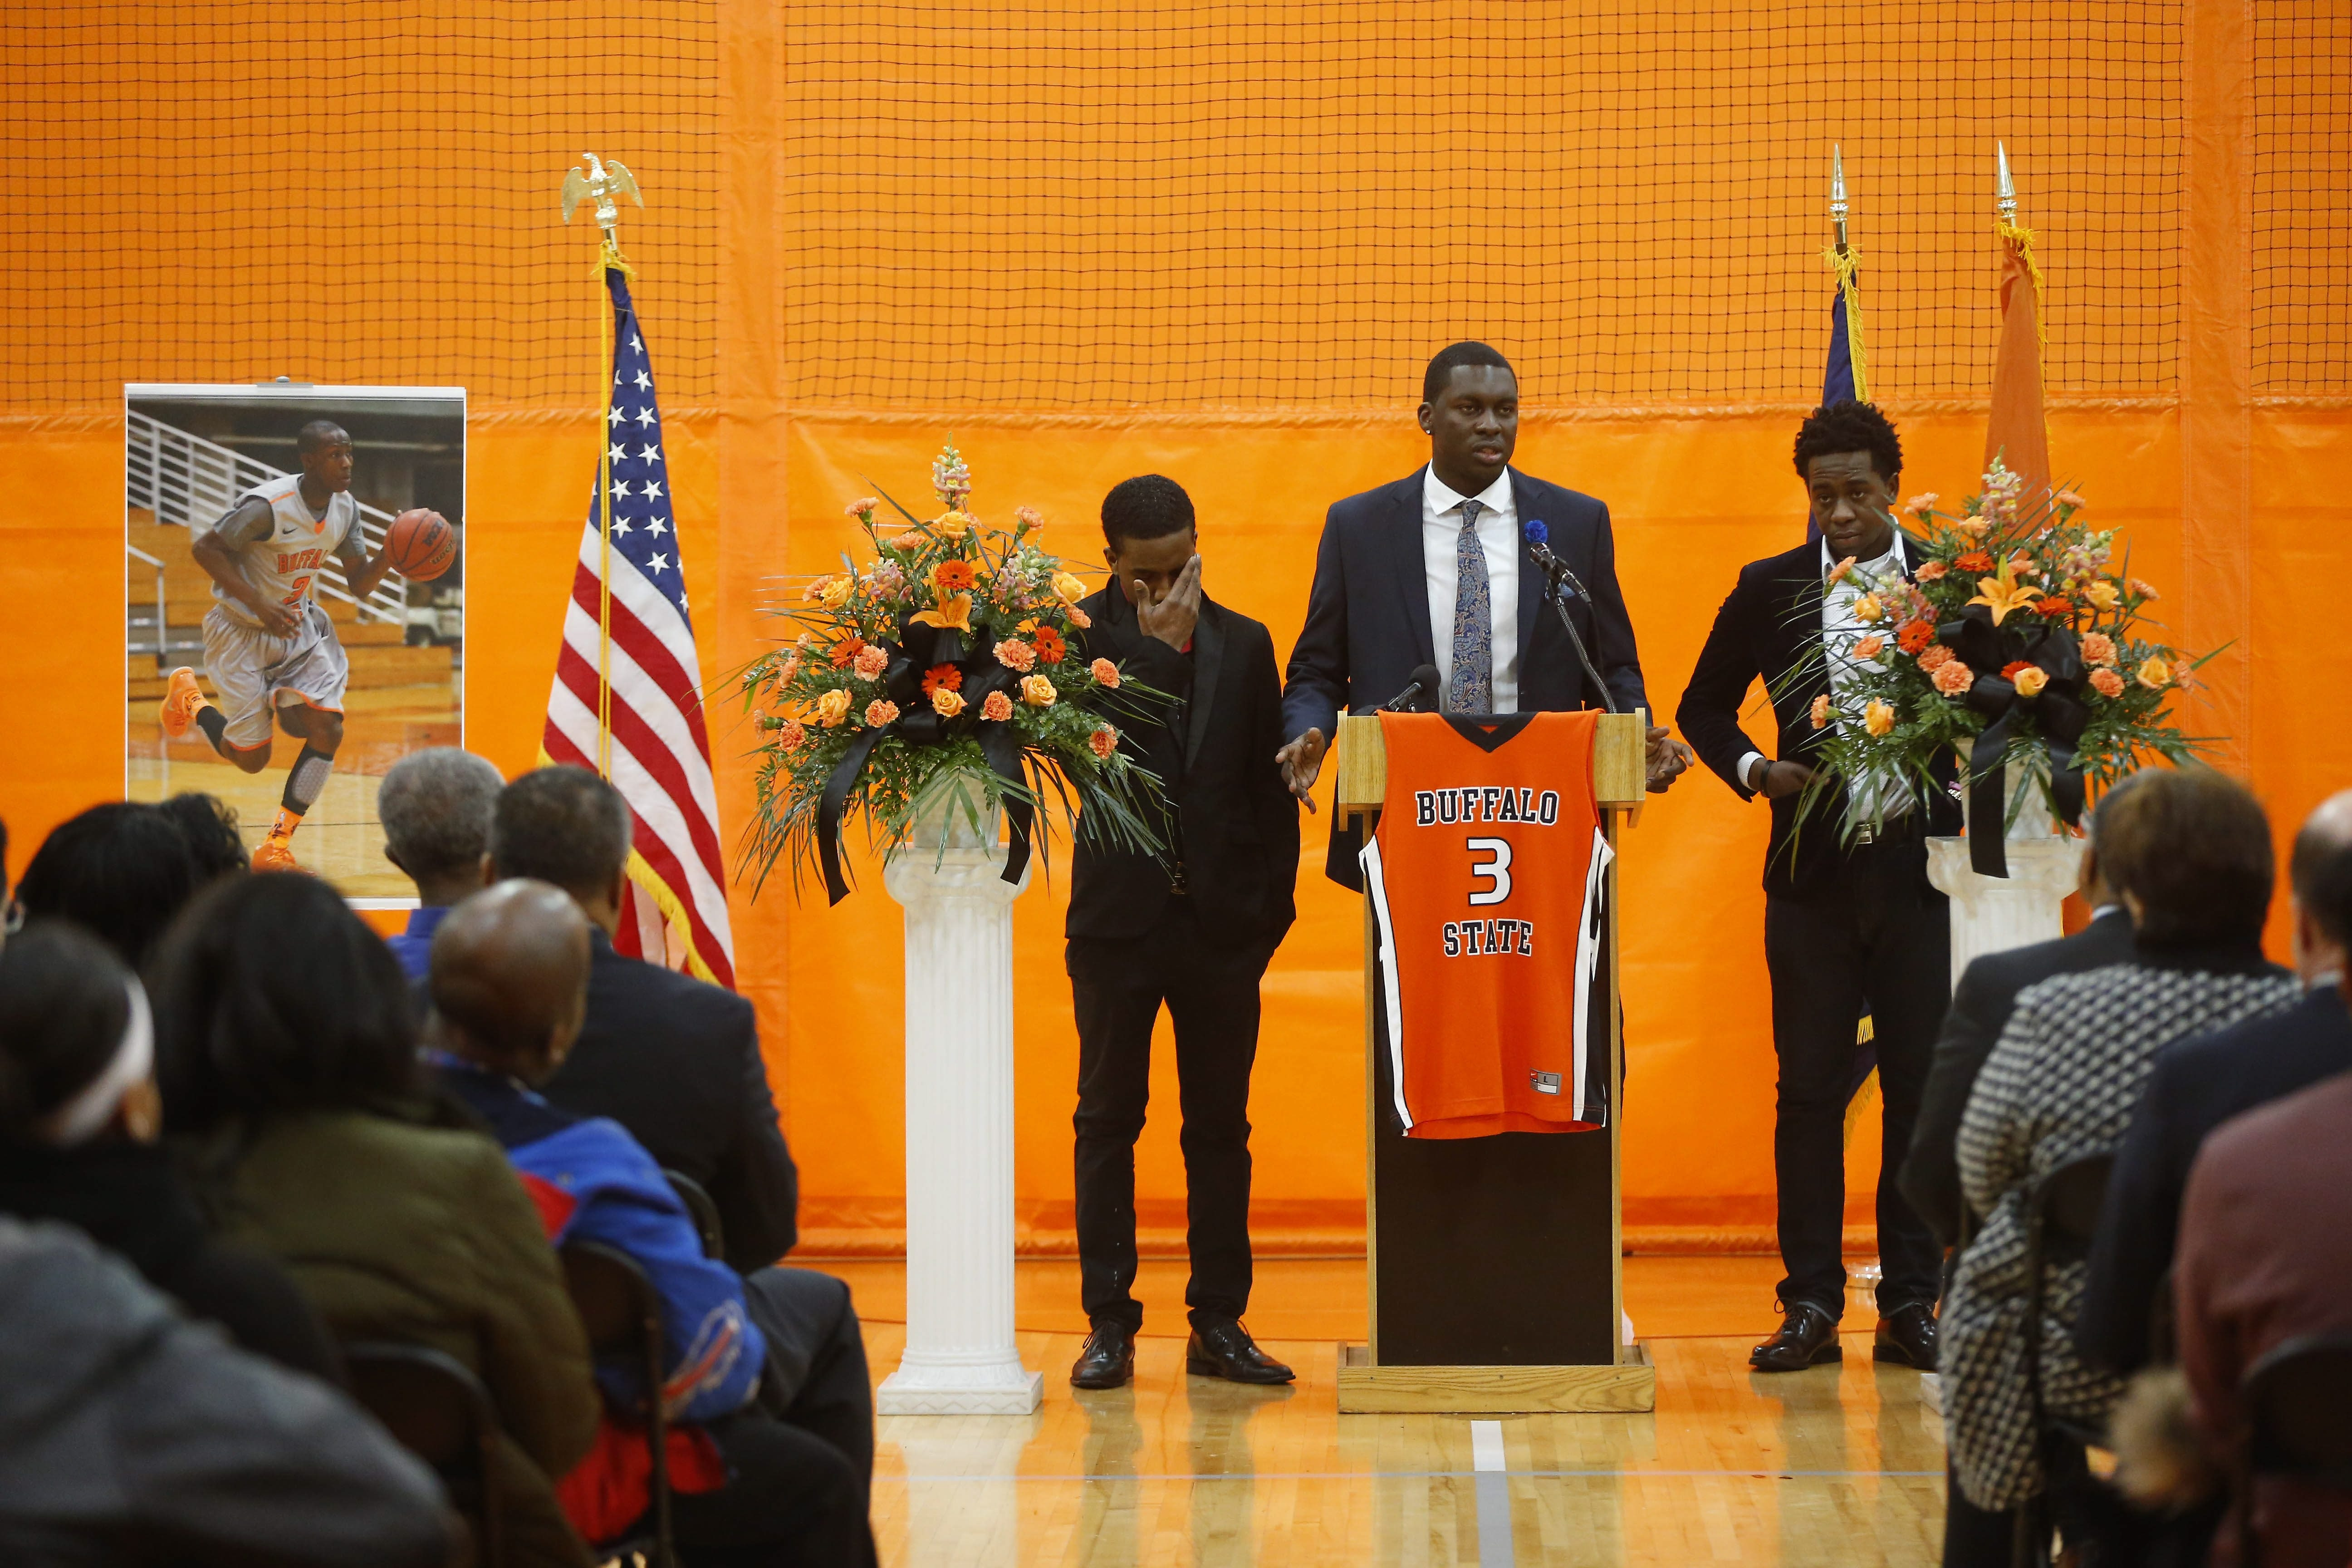 """Peter Murphy, president of the Caribbean Students Organization, speaks during a memorial service held Wednesday at Buffalo State's Houston Gym for former student Bradley D'Oyley, who was known as the """"Dance Hall King"""" among the Caribbean group."""